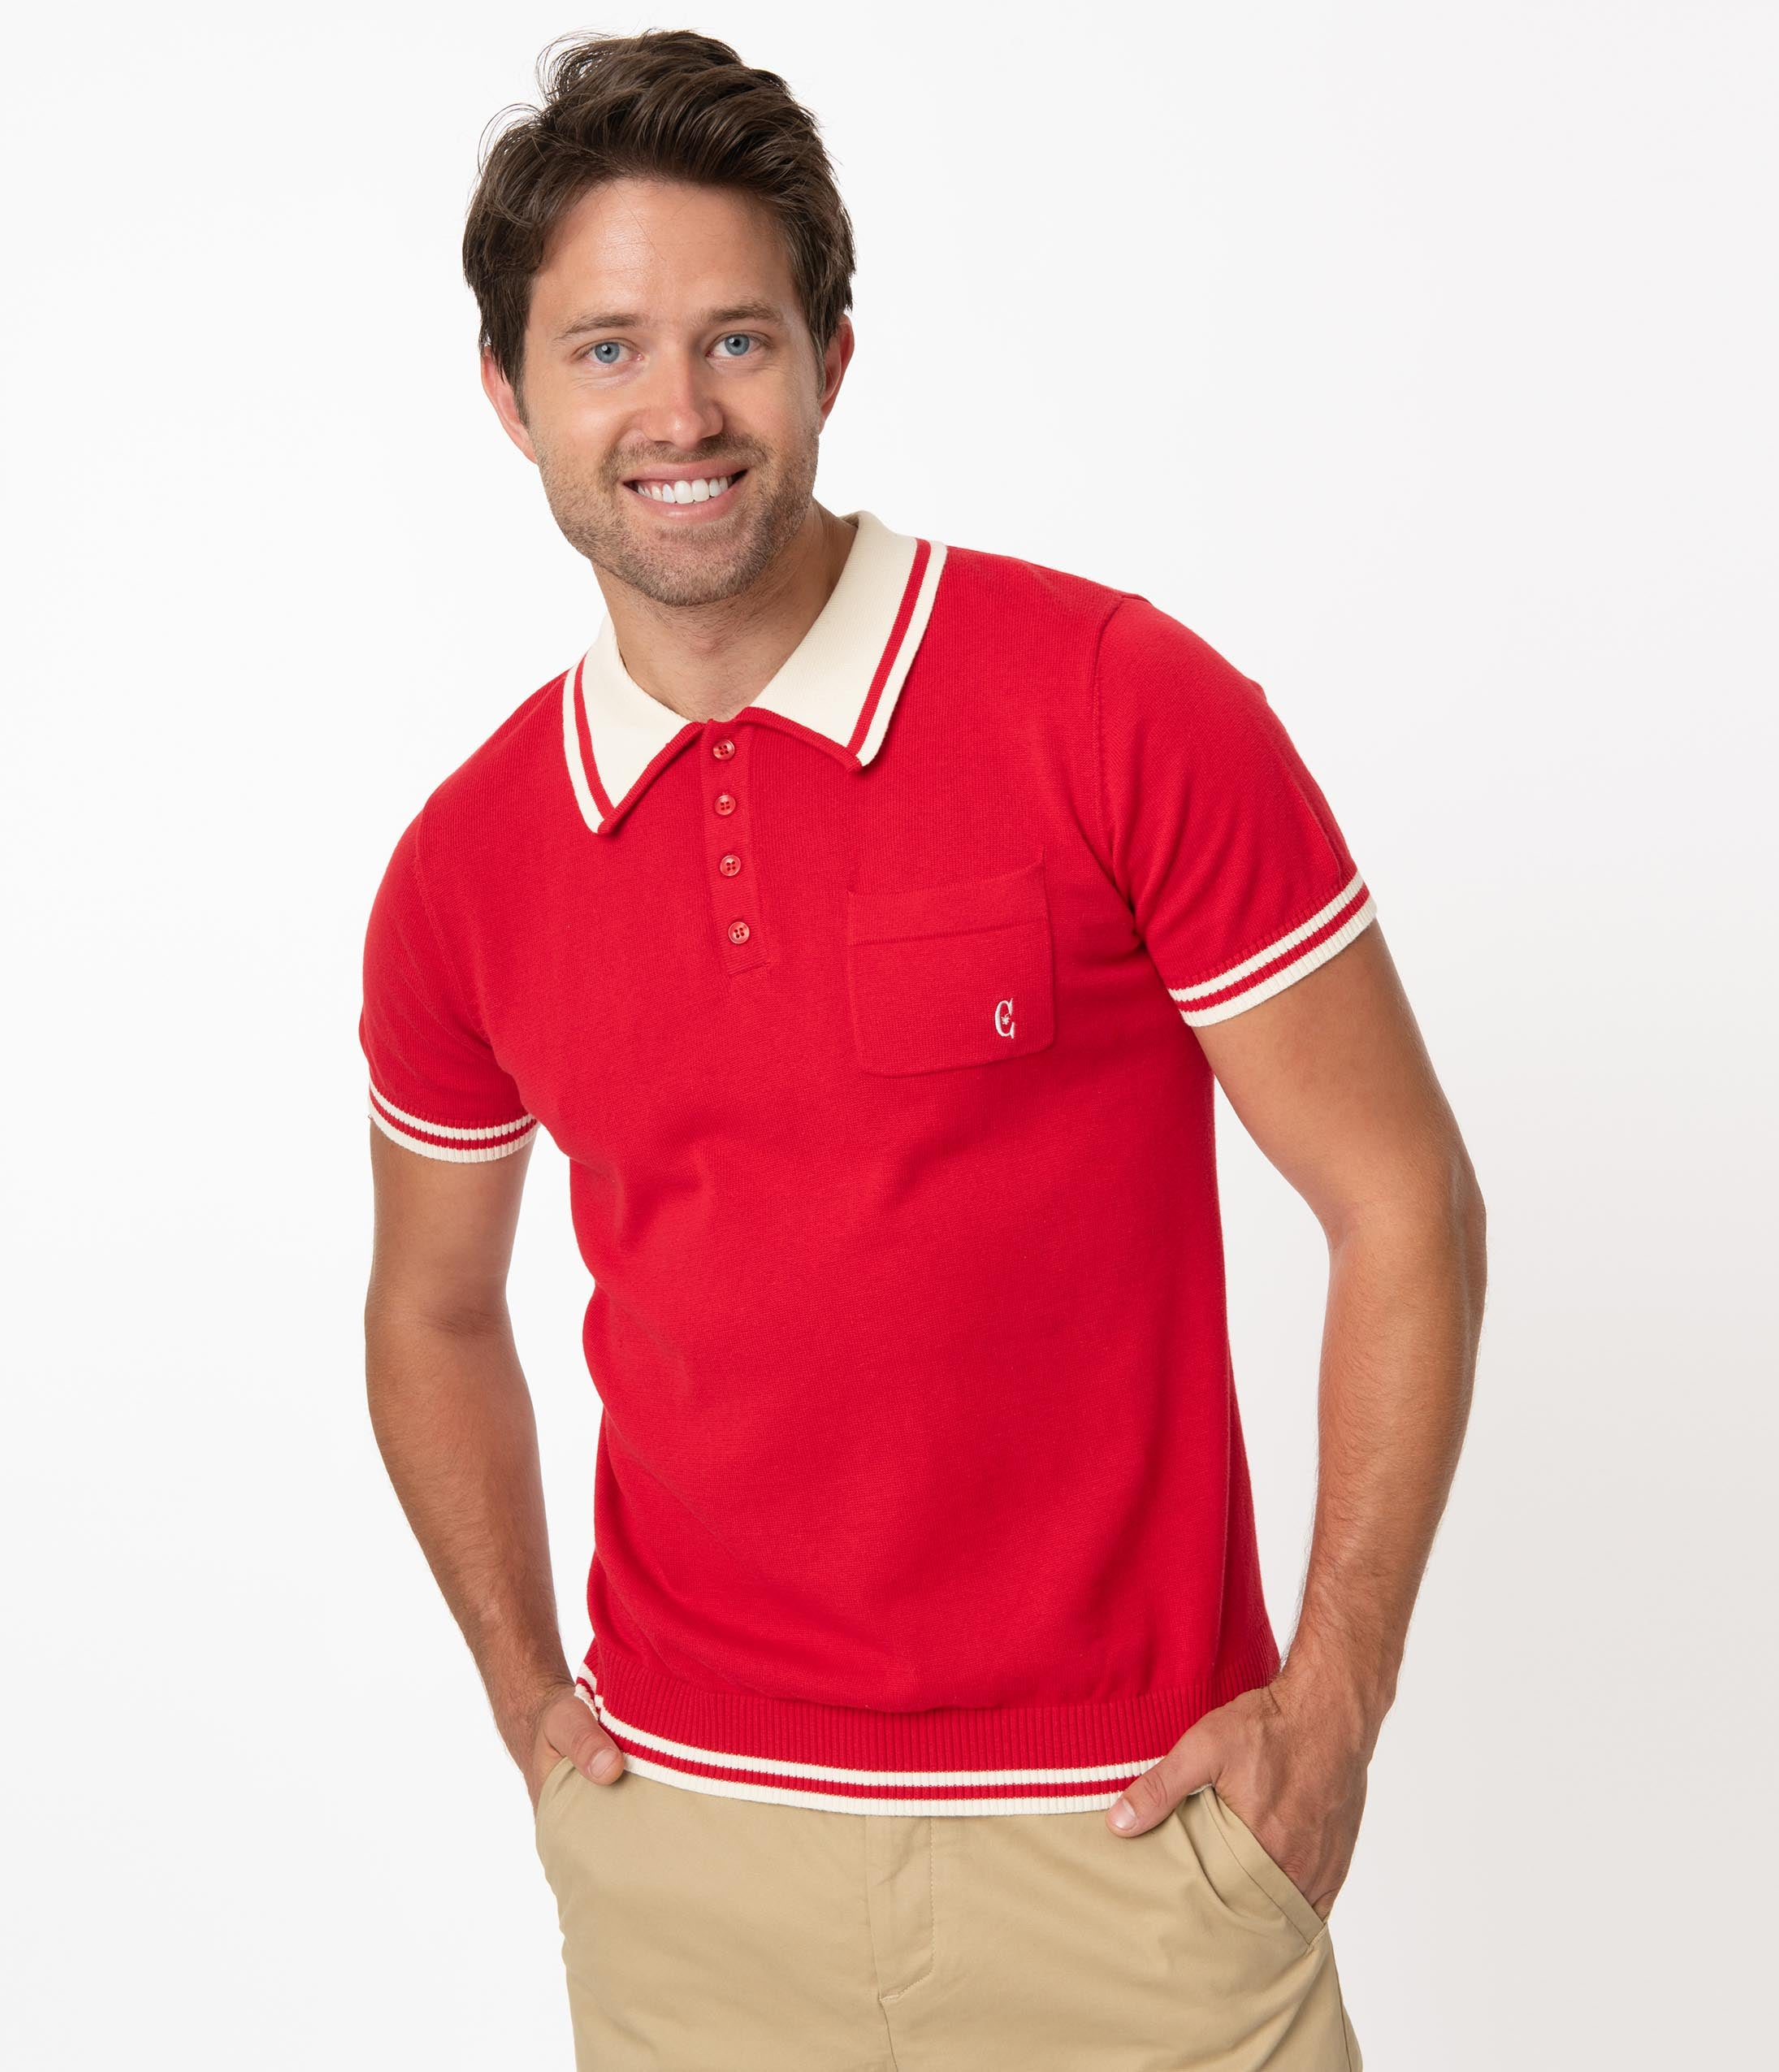 1960s Men's Clothing Collectif 1950S Retro Red Peru Knit Mens Polo Shirt $64.00 AT vintagedancer.com